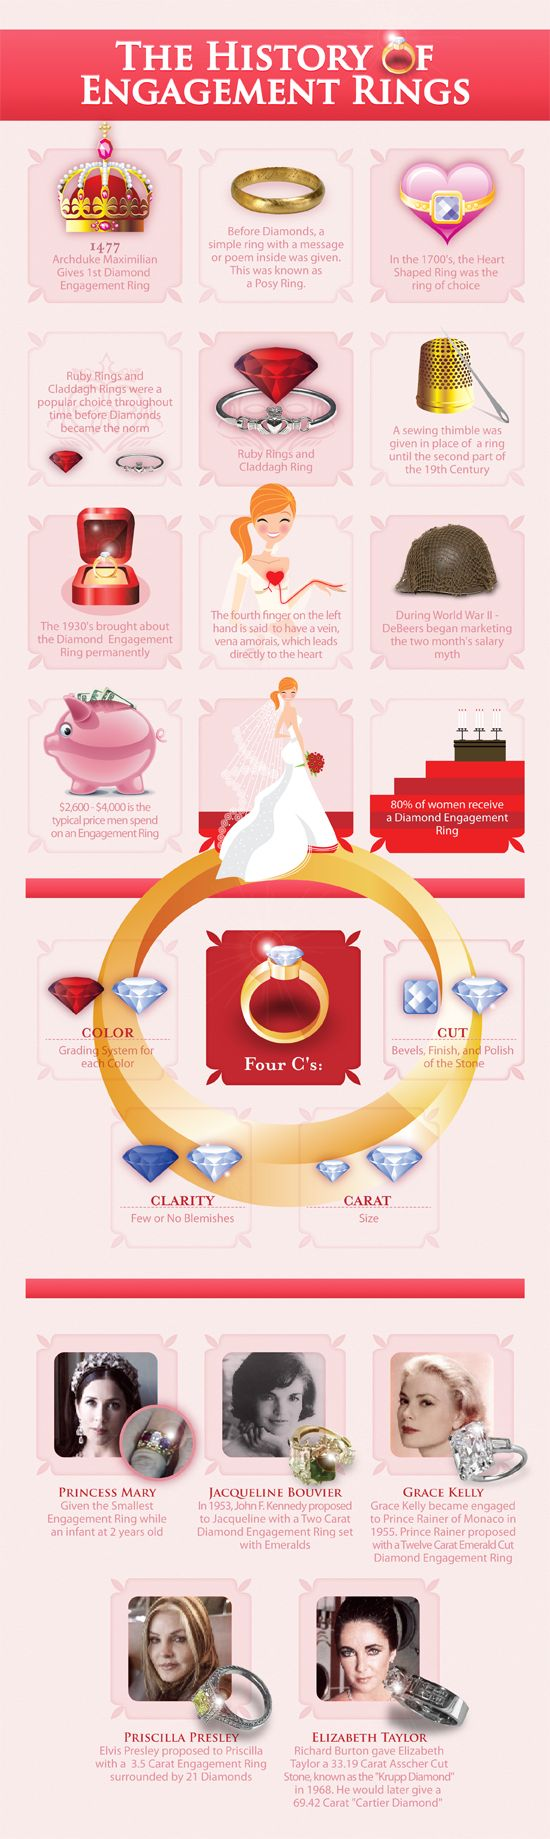 History of Engagement Rings themarriedapp.com hearted ♥